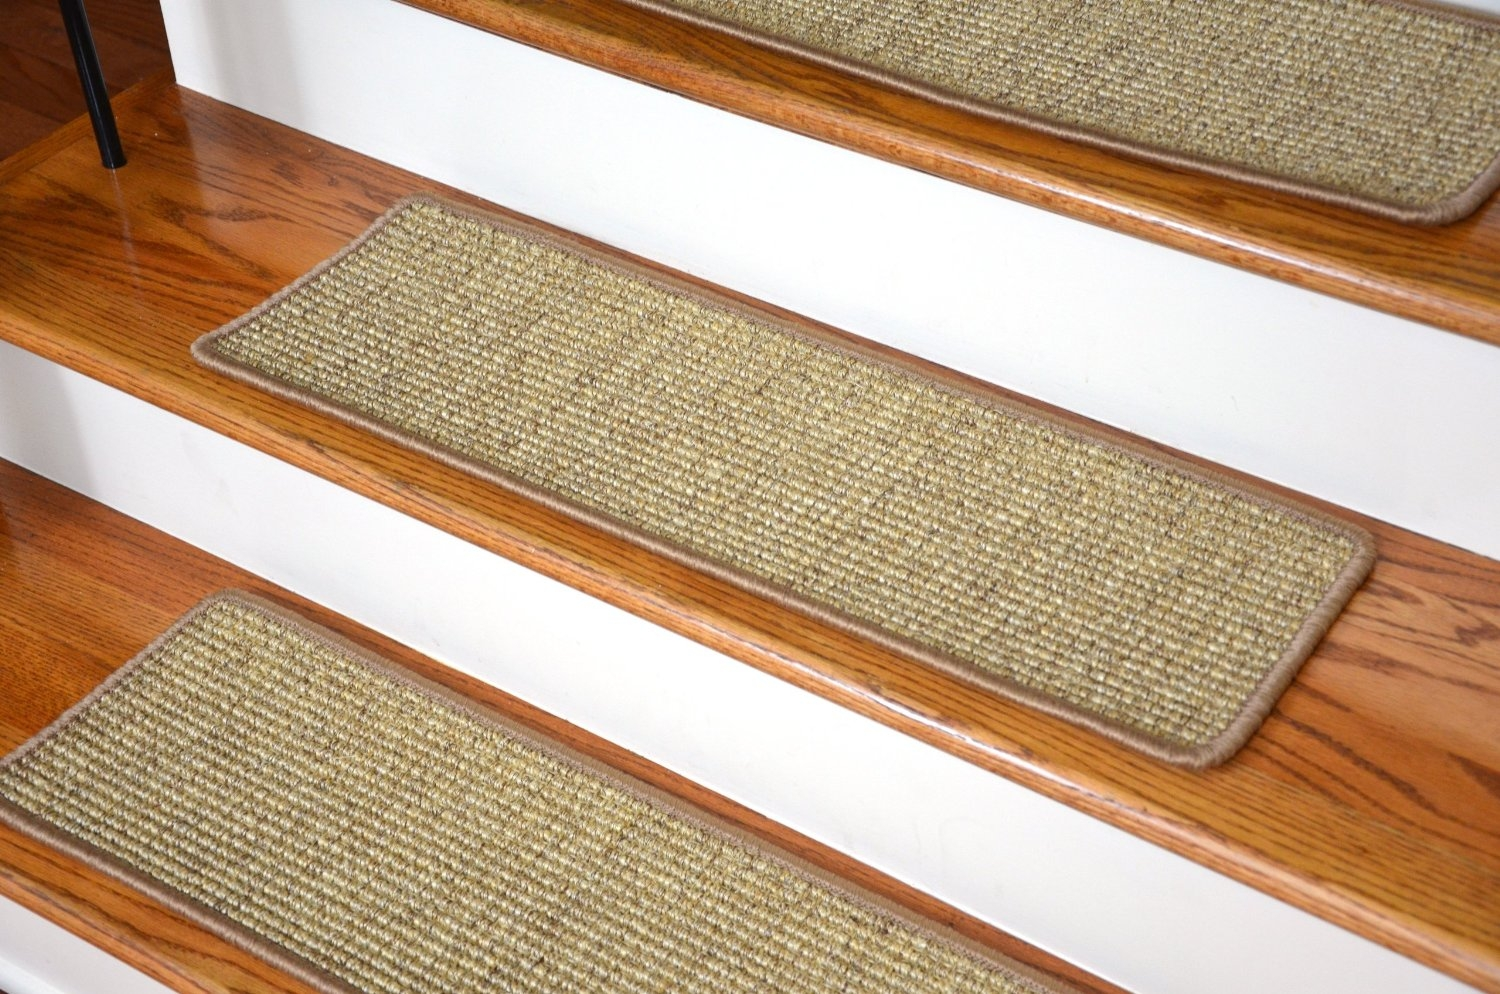 Easy Installing Carpet Stair Treads Stair Design Ideas With Stair Treads And Rugs (Image 6 of 15)